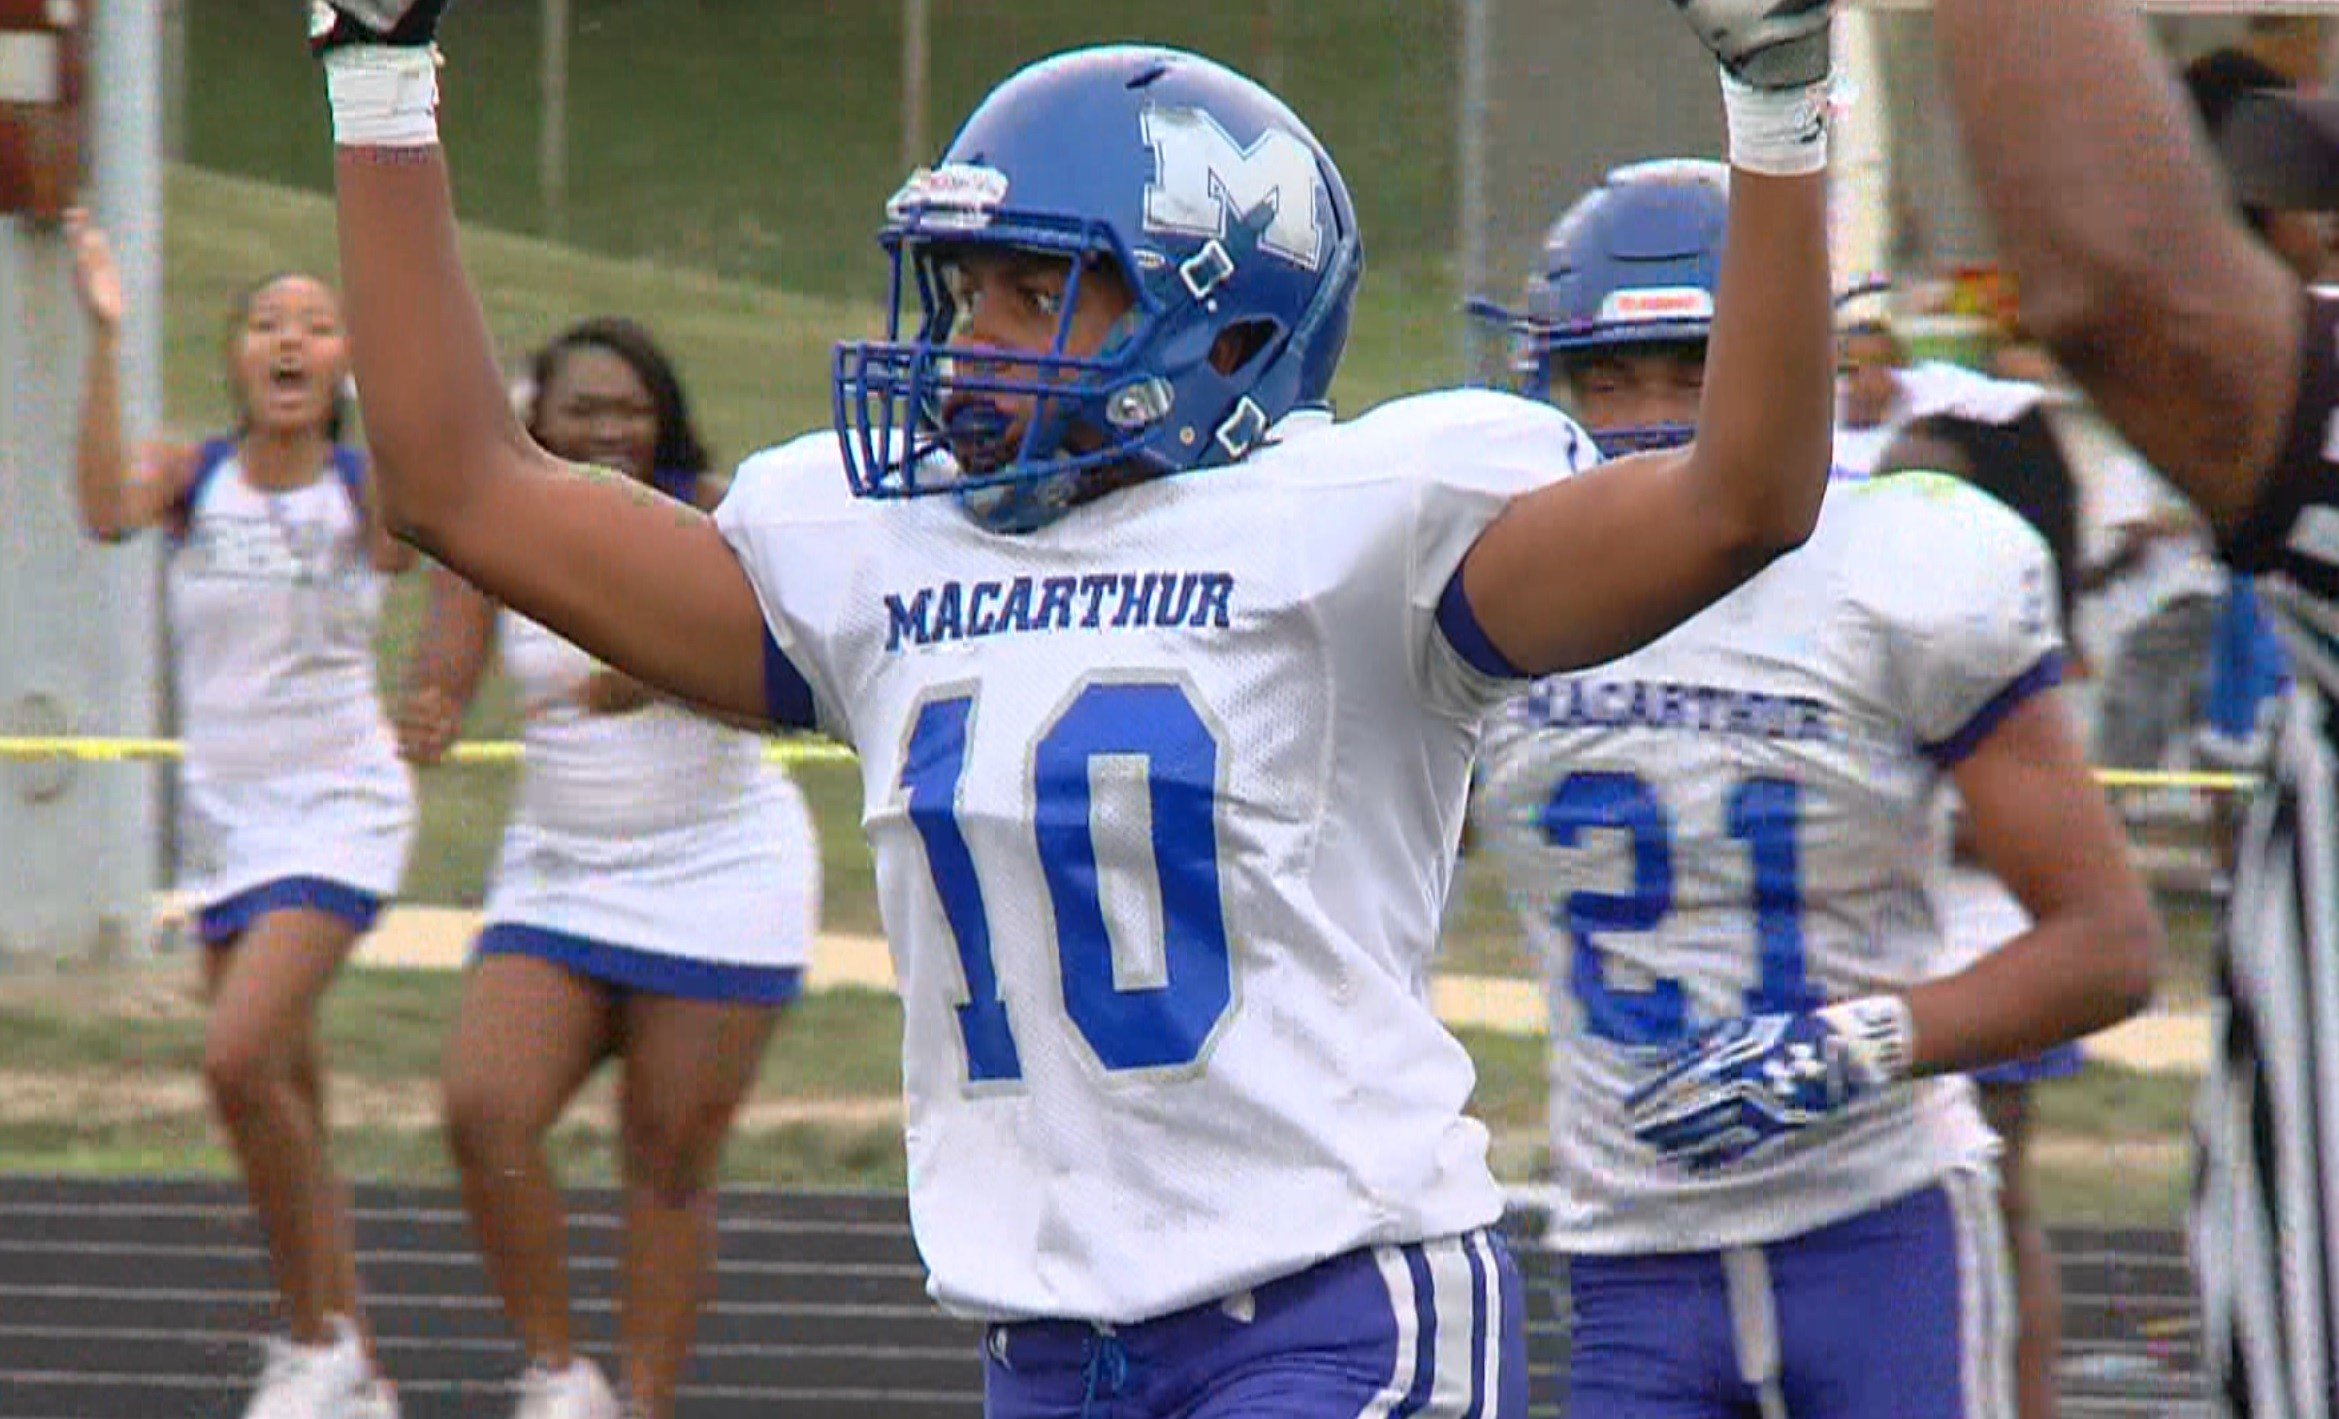 MacArthur senior receiver Ray Neal, Jr. scored three touchdowns on Saturday against Eisenhower, but it's work off the field that makes him stand out.